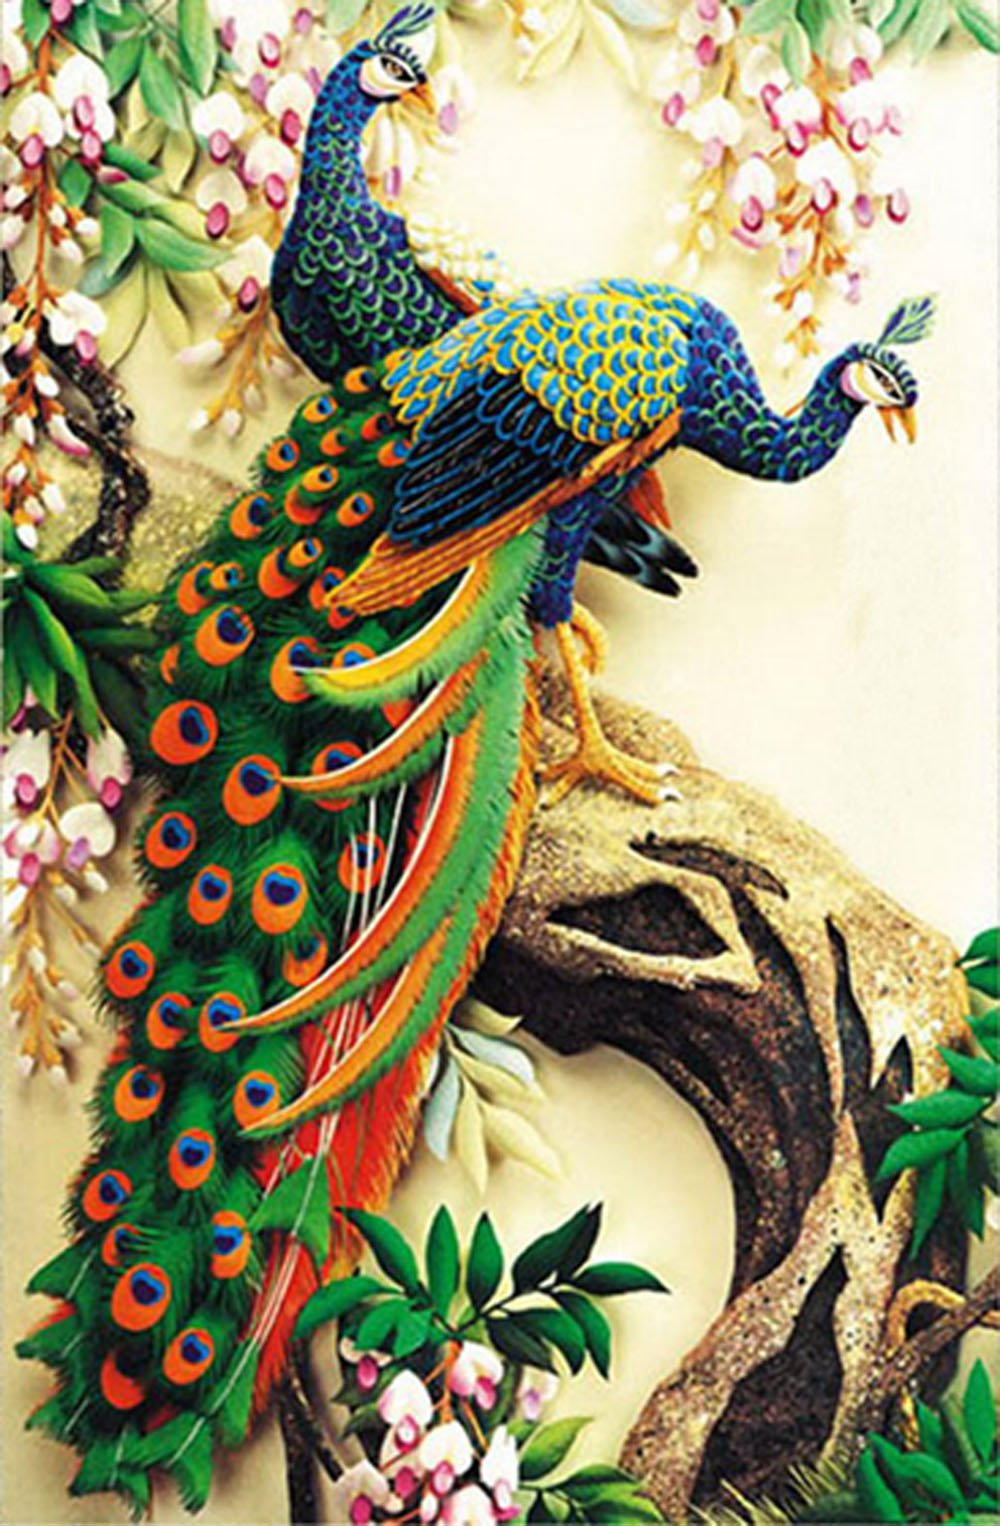 ZHENC Double Peacock Flower Tree Animals 5D DIY Full Square Diamond Painting Embroidery Full Drill Craft Decor Cross Stitch Kits by ZHENC